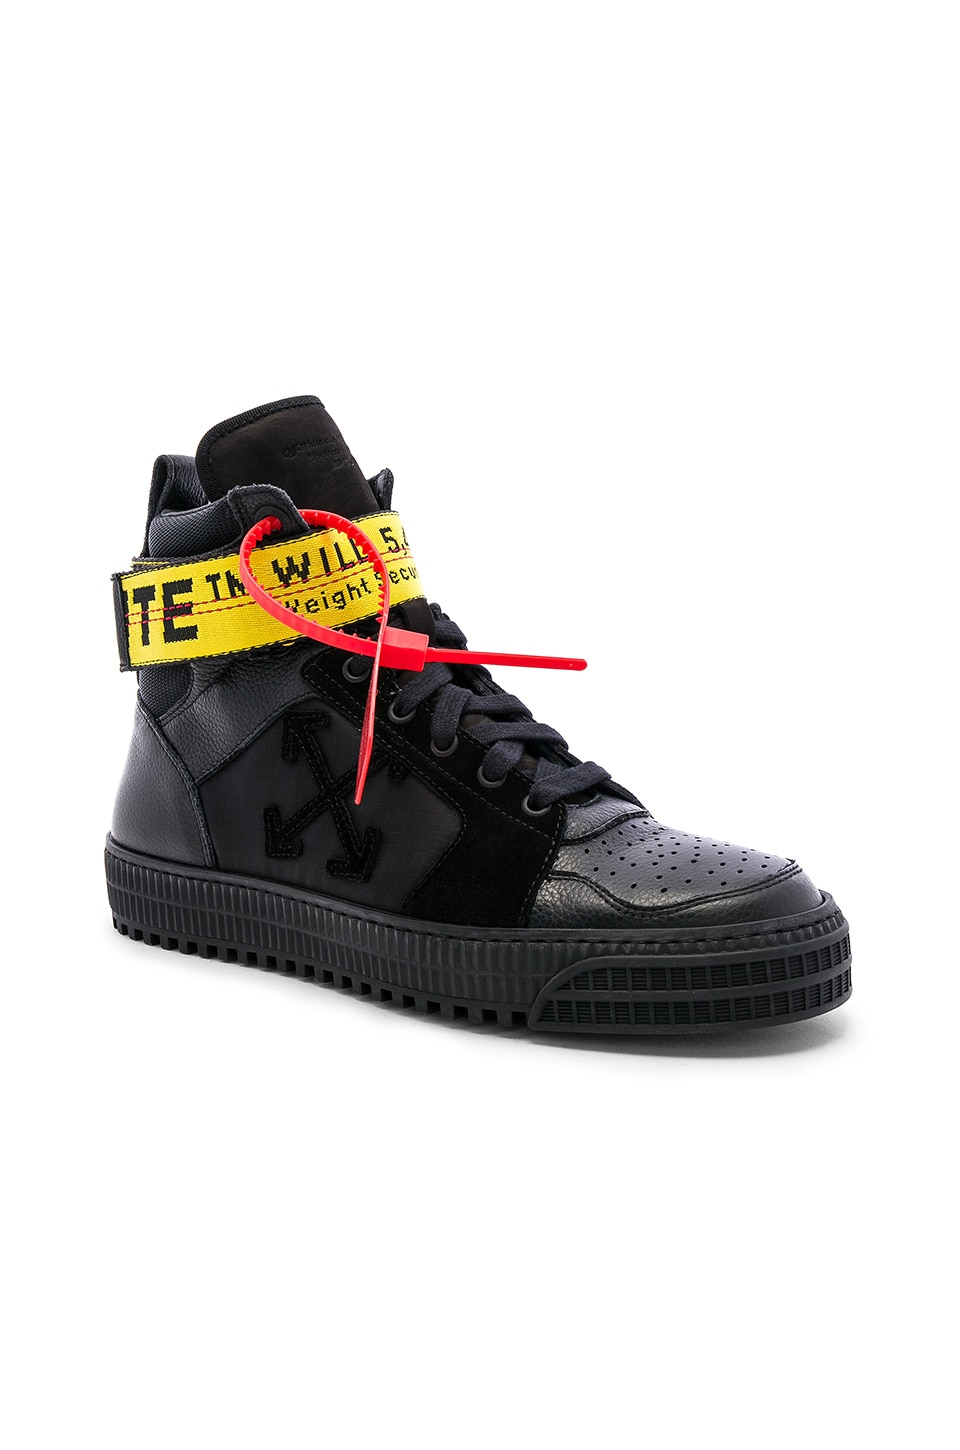 plus récent 005a9 2a4e0 OFF-WHITE Industrial Belt Hi-Top Sneaker in Black & Black ...